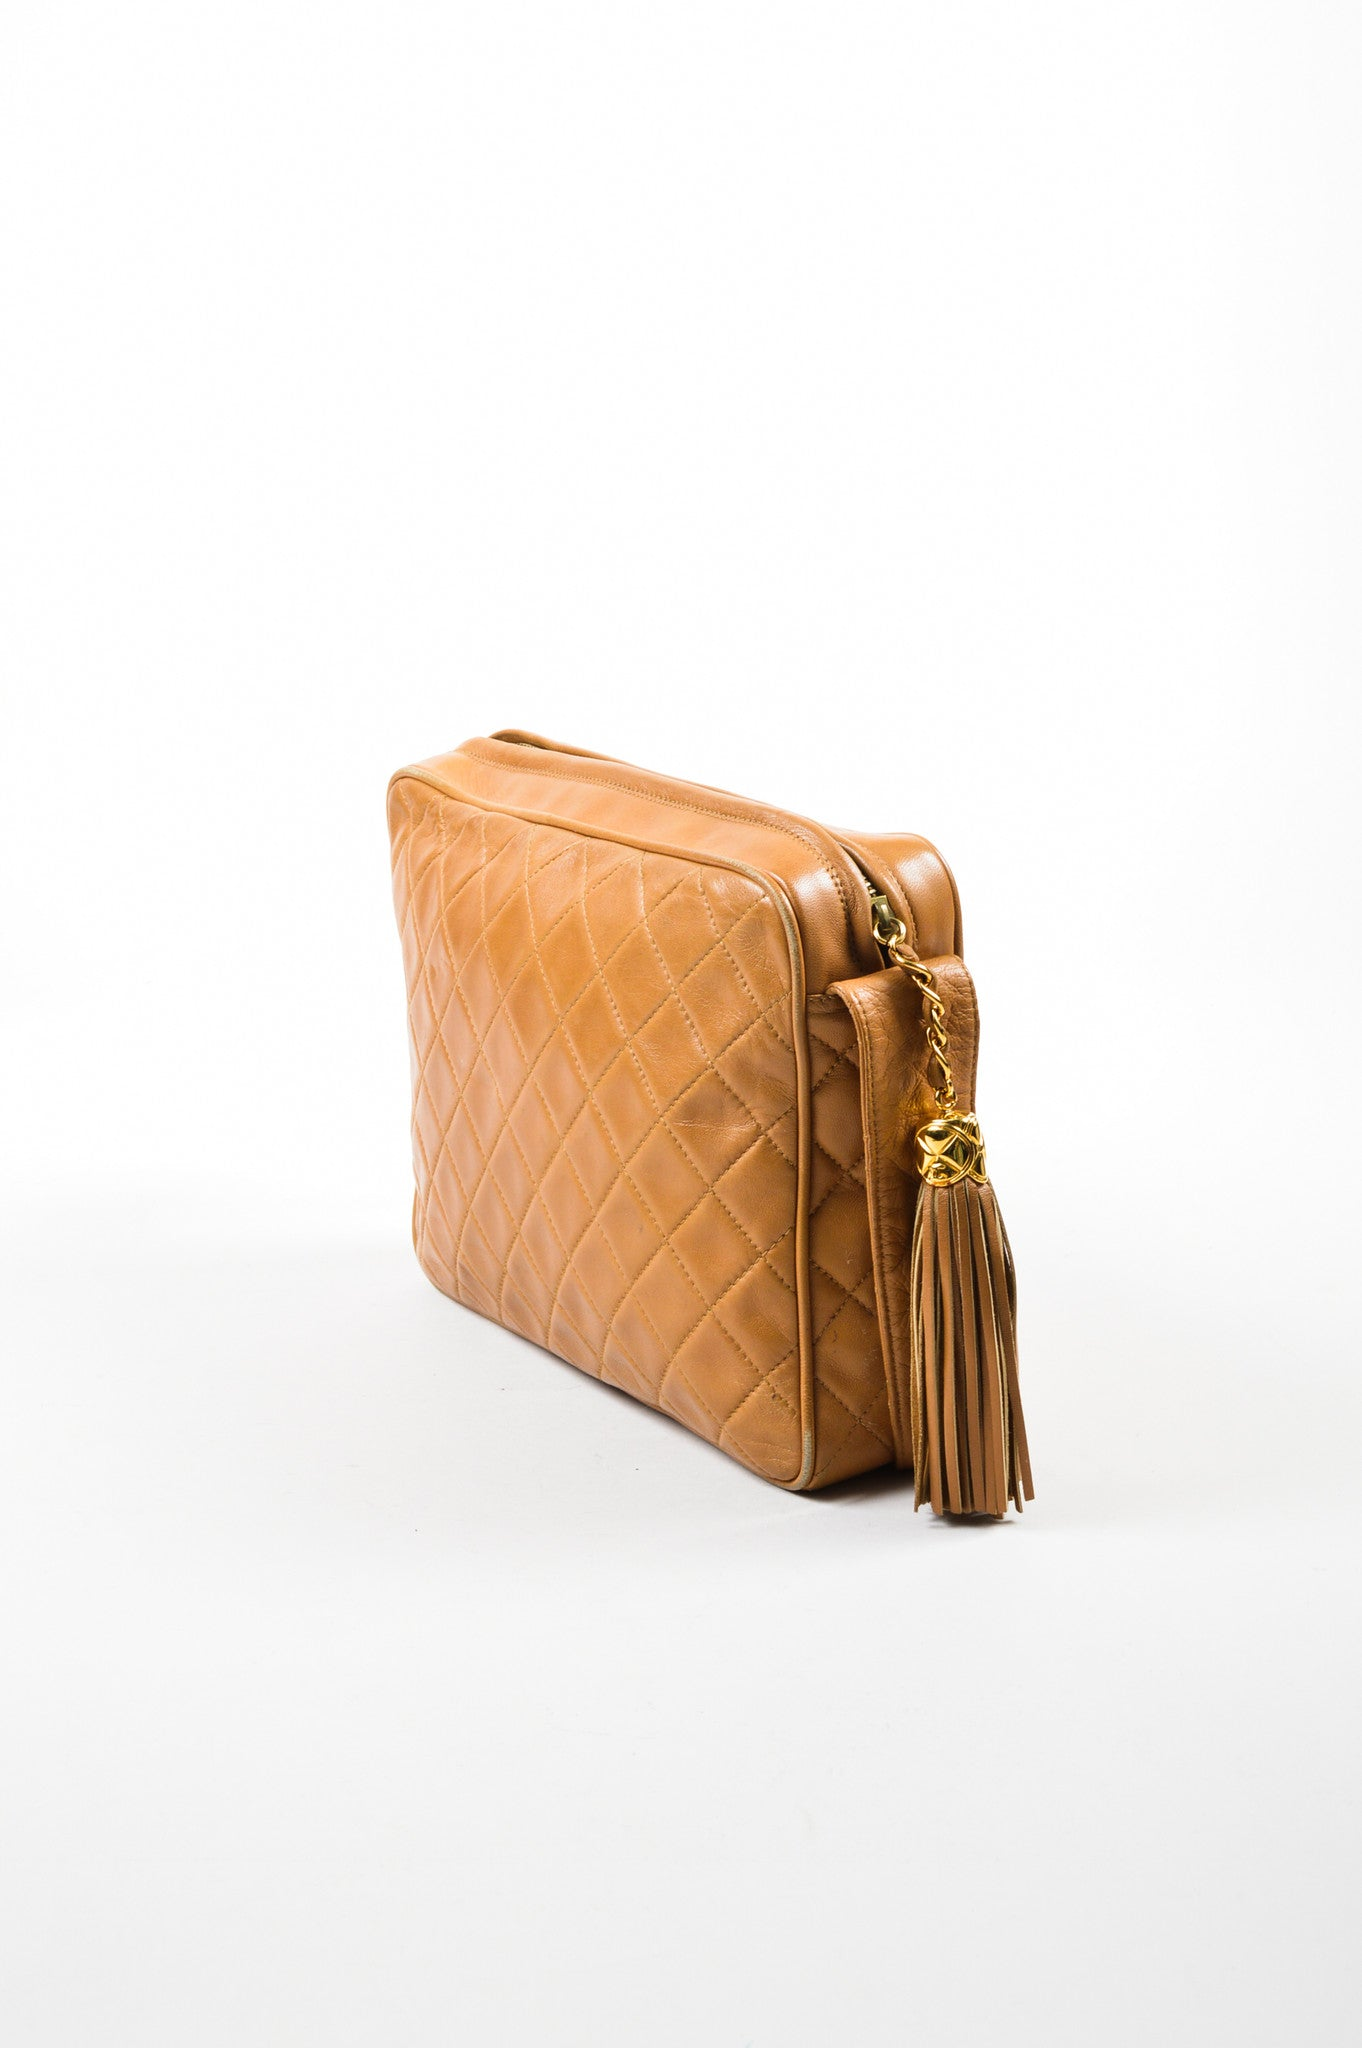 Caramel Tan Chanel Lambskin Leather Quilted 'CC' Tassel Shoulder Bag Sideview